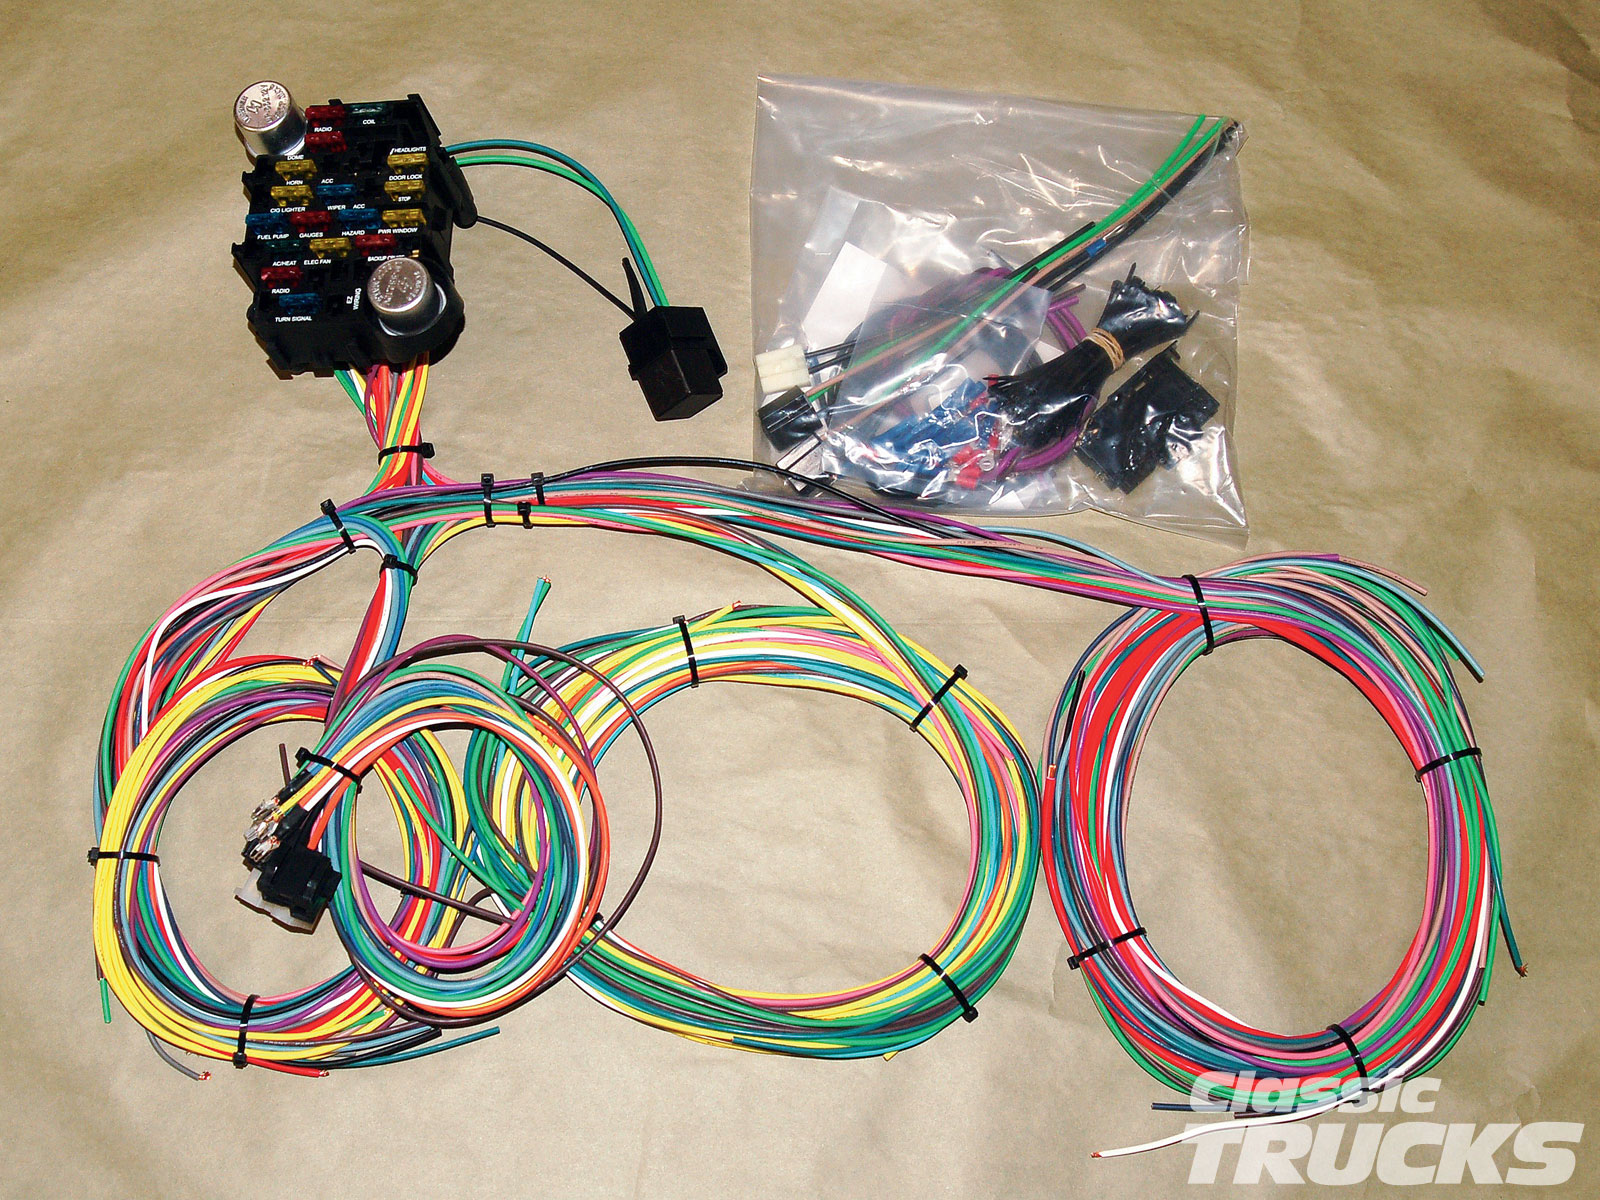 1010clt 02 o aftermarket wiring harness install kit?resize\\\=665%2C499 painless wiring harness australia tamahuproject org painless wiring harness australia at soozxer.org